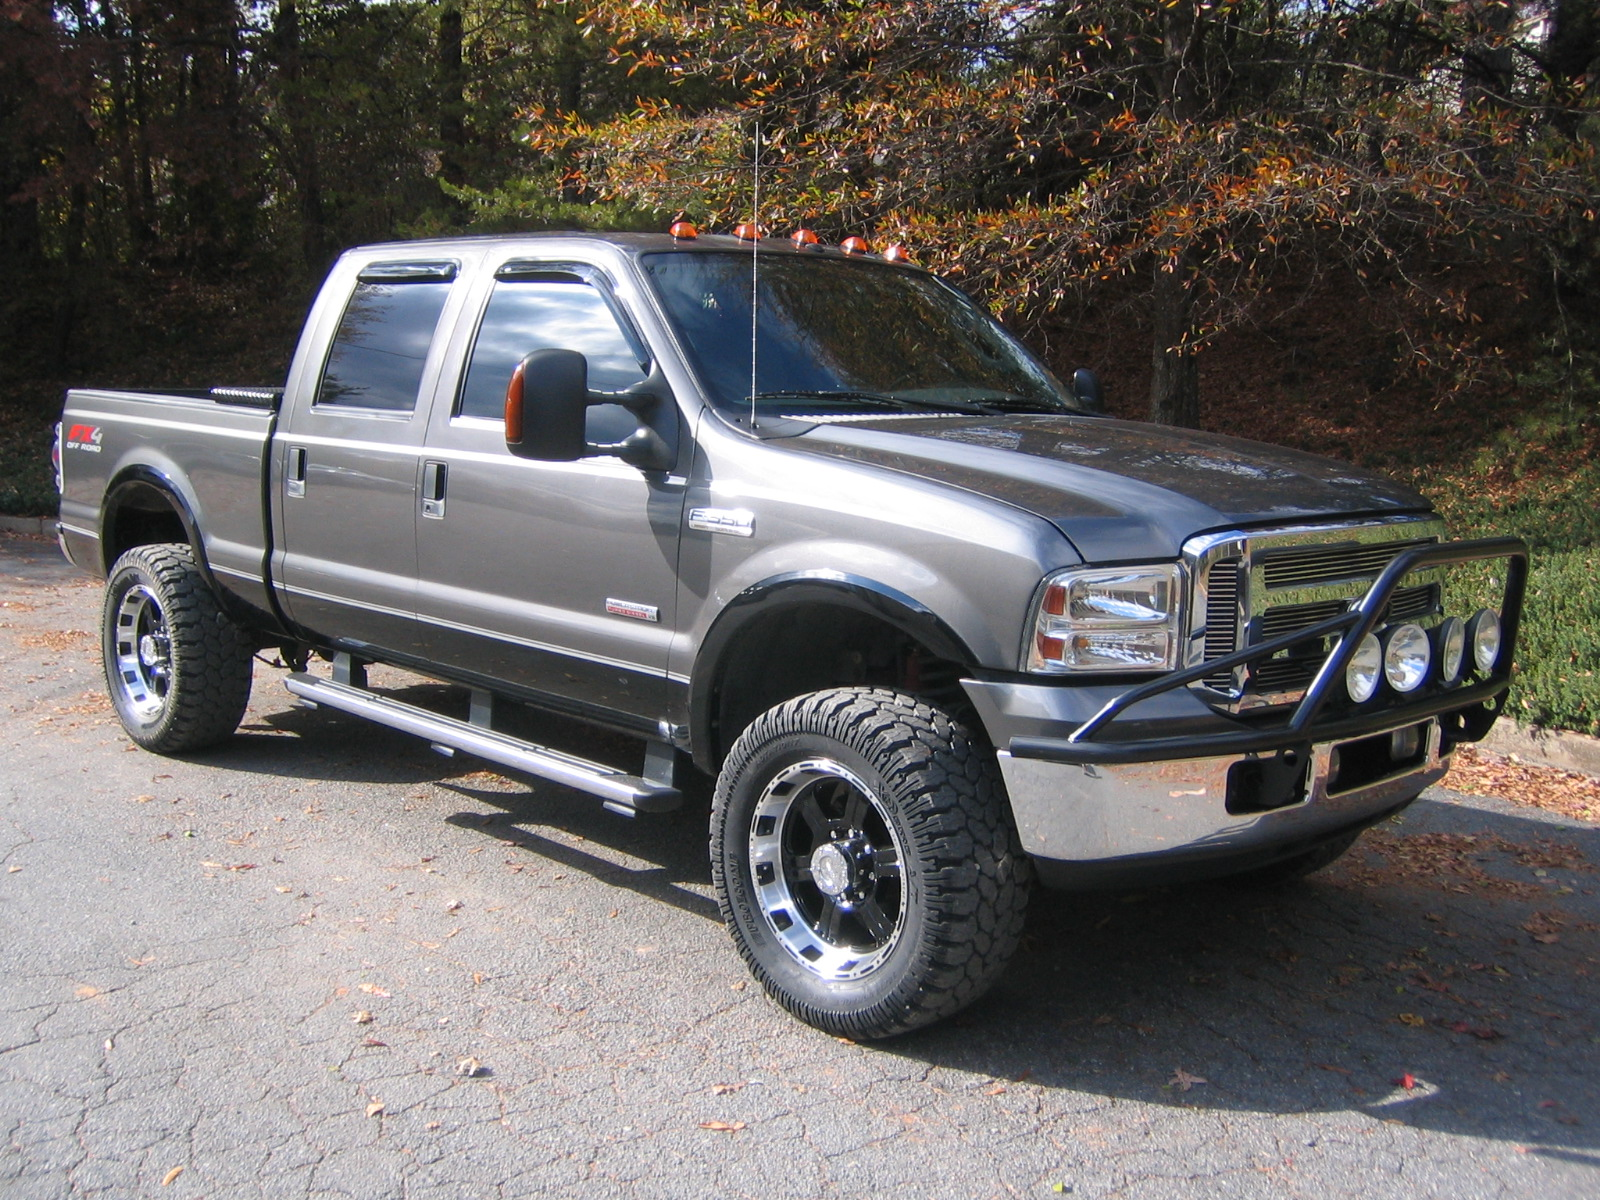 F350 Diesel For 2002 Ford F 350 Super Duty Image 9